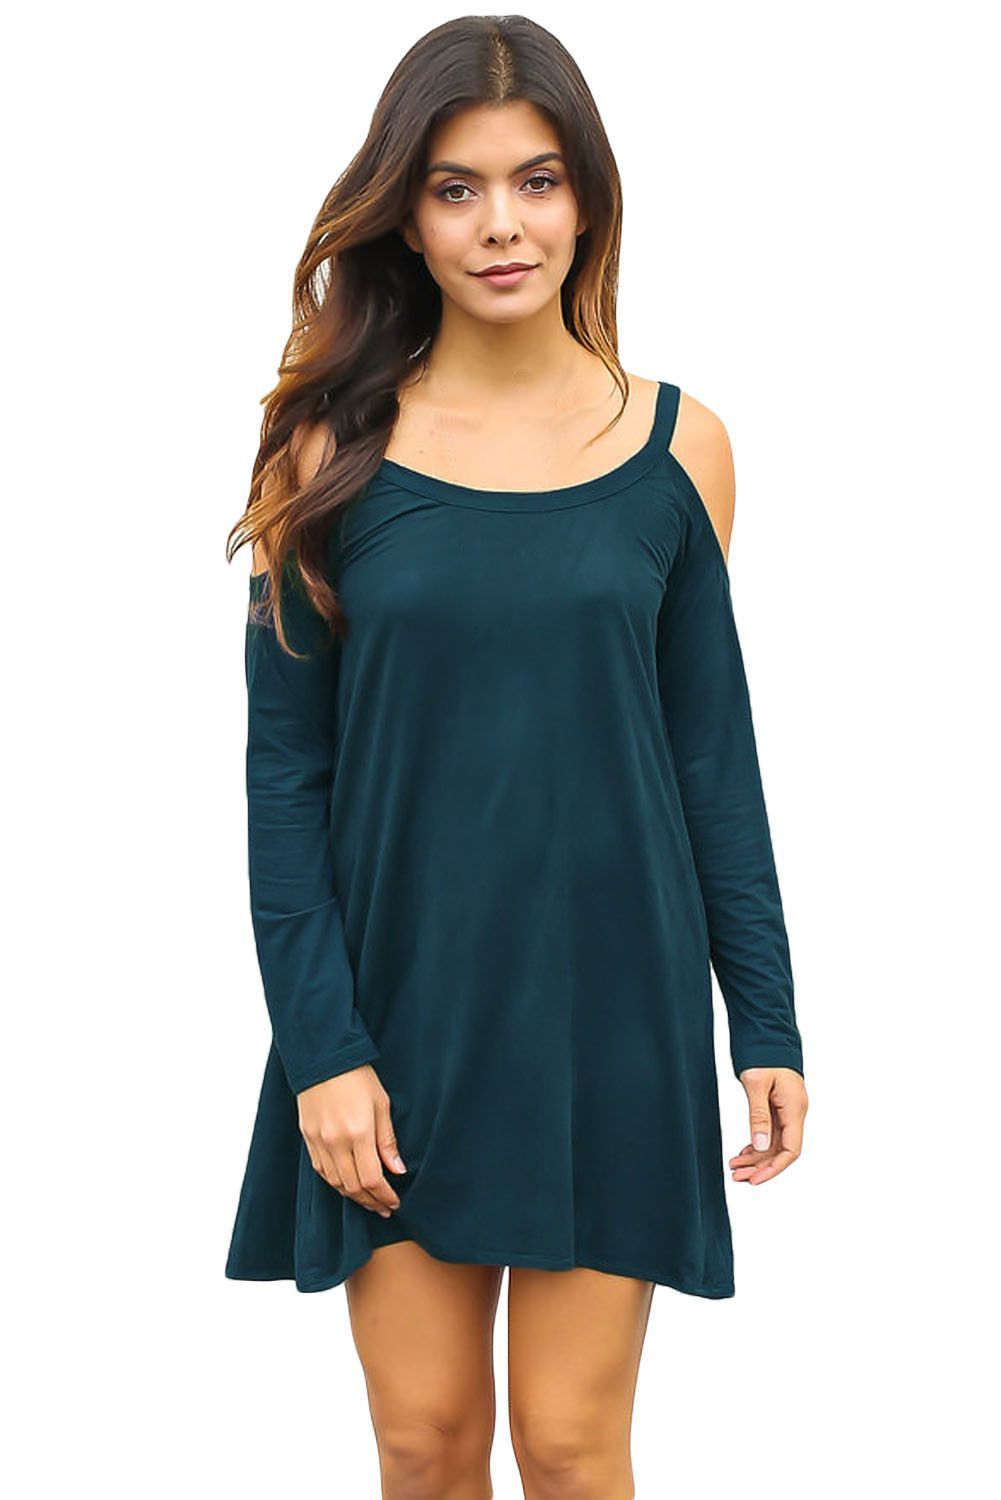 Chicloth Blue Sexy Cute Cold Shoulder Flared Cotton Dress   Products ... 578dd12af80b